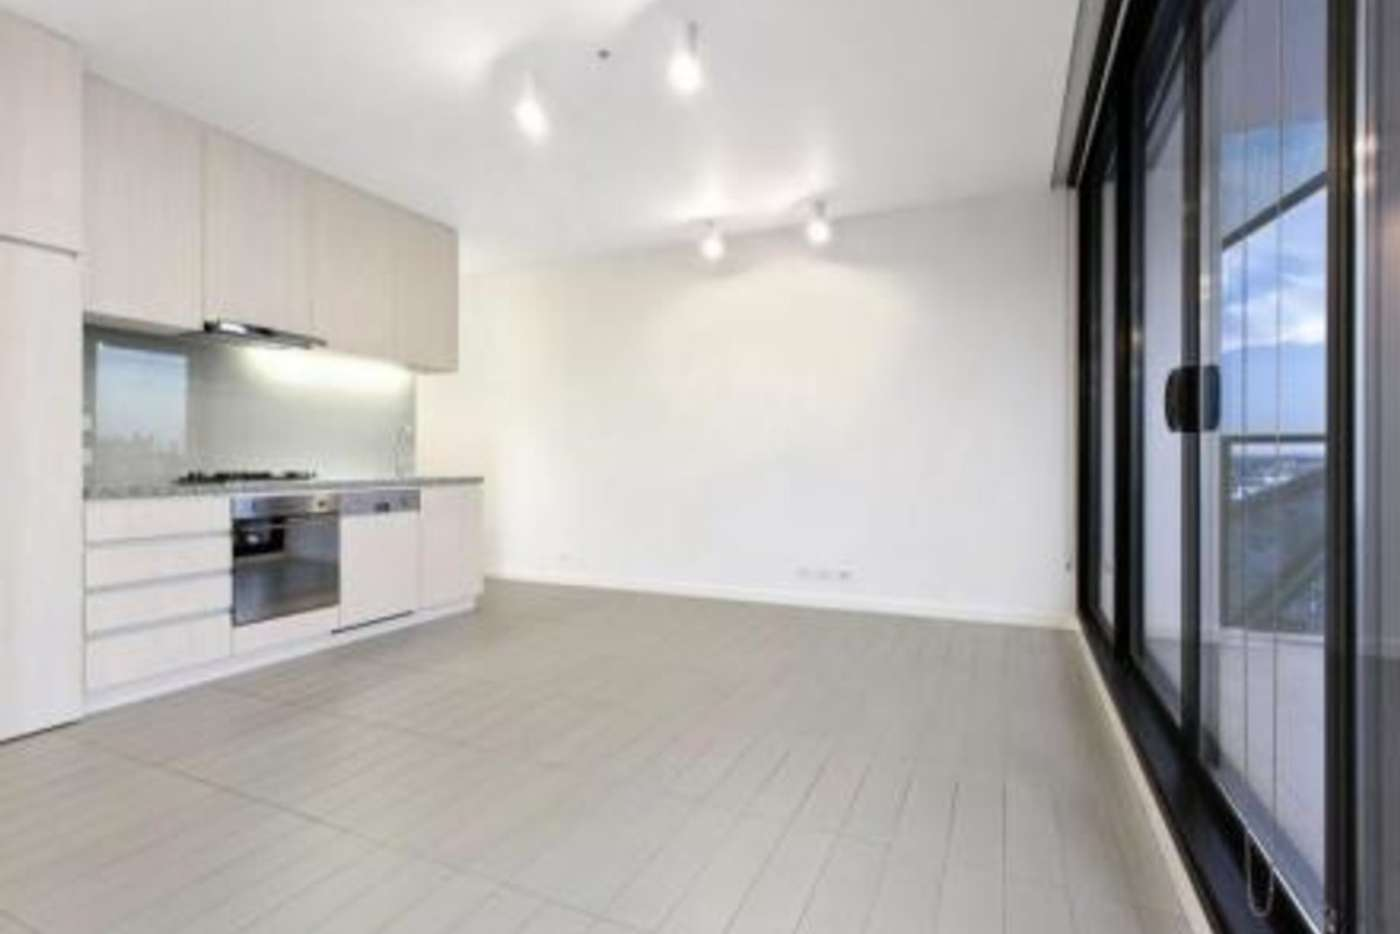 Main view of Homely apartment listing, 806/673 La Trobe Street, Docklands VIC 3008